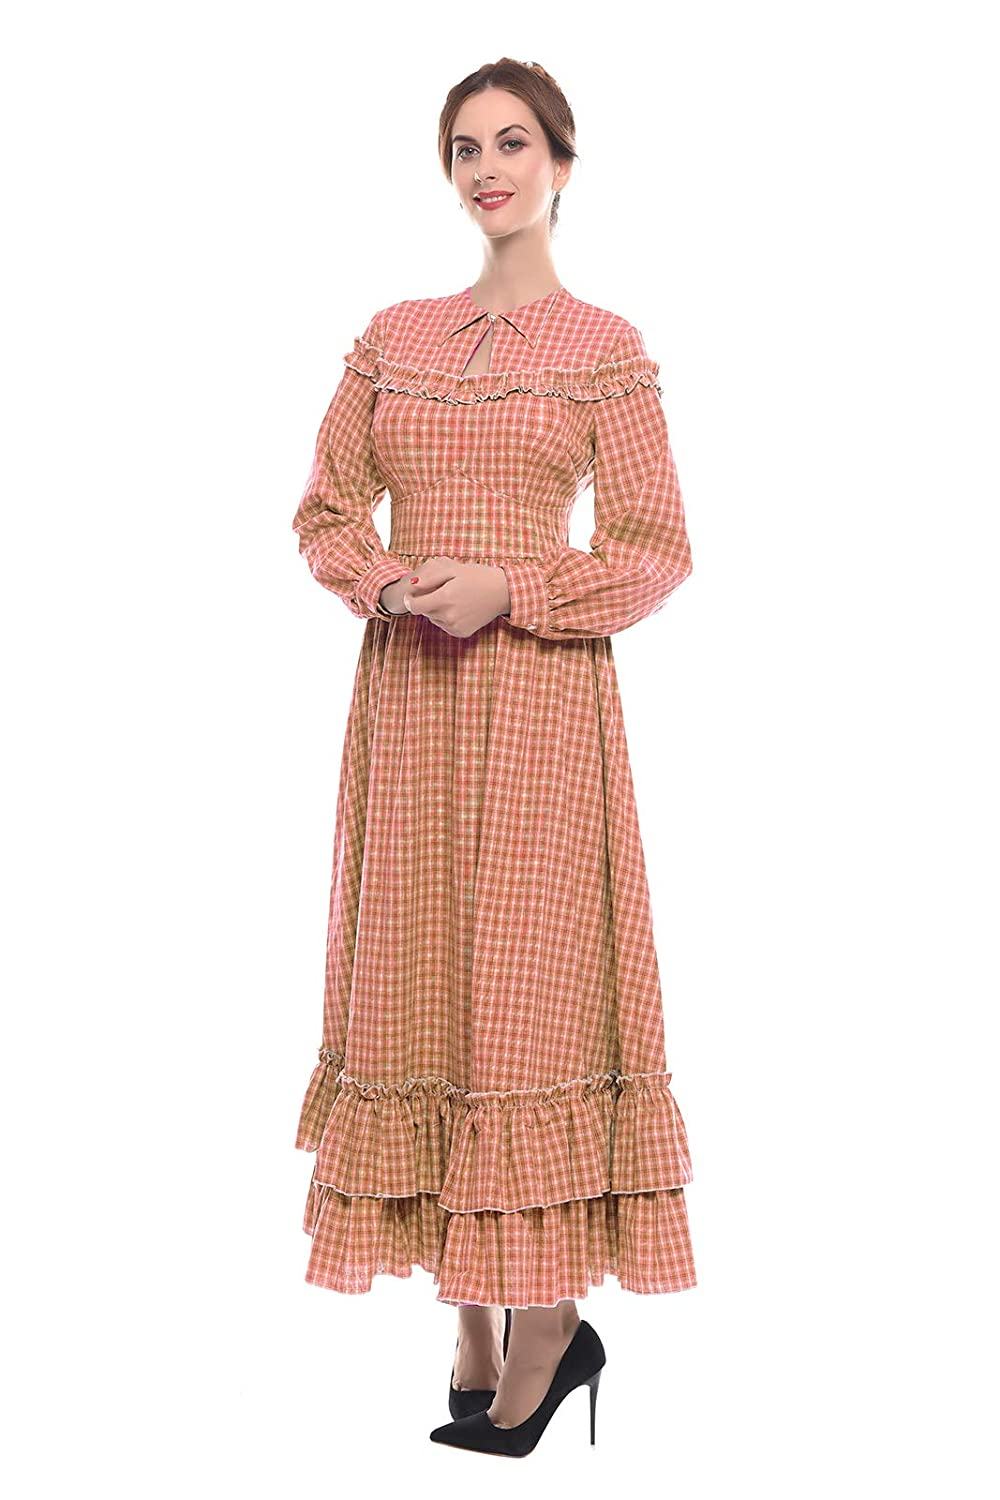 Victorian Dresses | Victorian Ballgowns | Victorian Clothing NSPSTT Women Girls American Pioneer Colonial Dress Prairie Costume $53.99 AT vintagedancer.com